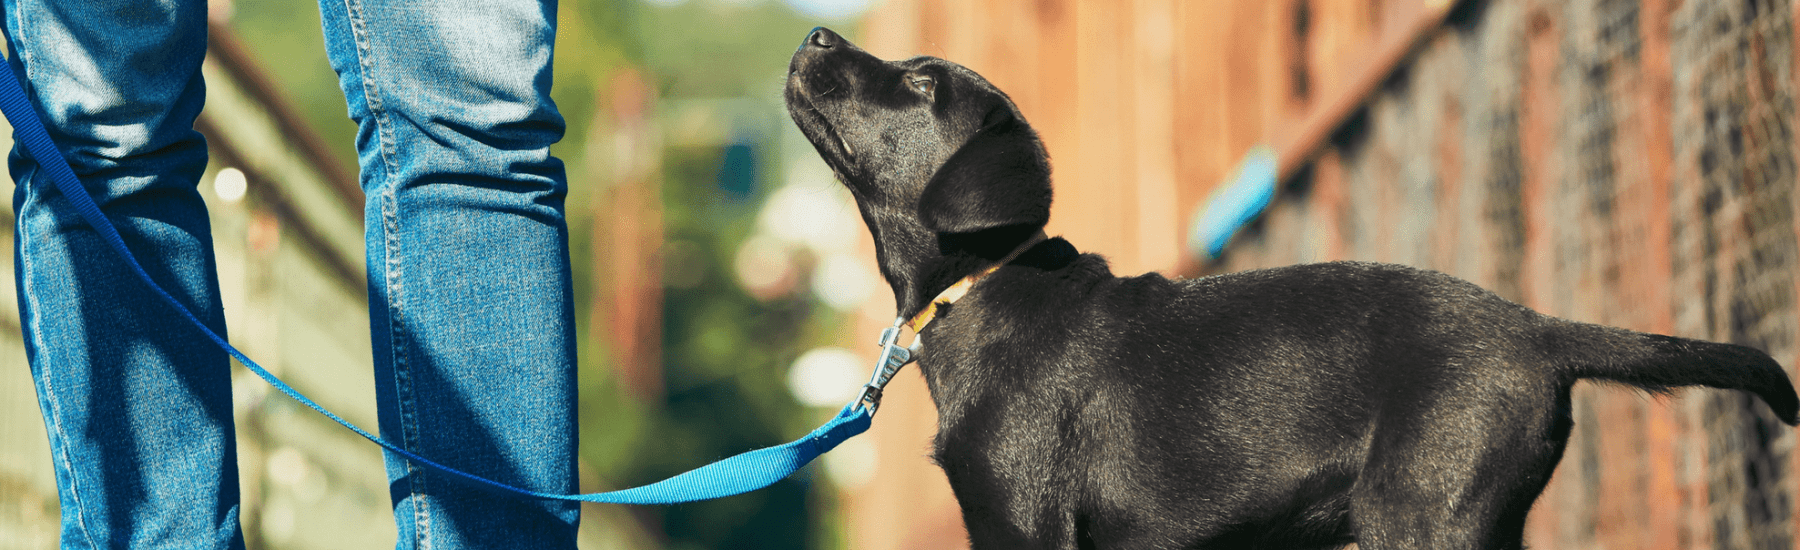 A small black dog looks up at their owner wearing jeans.